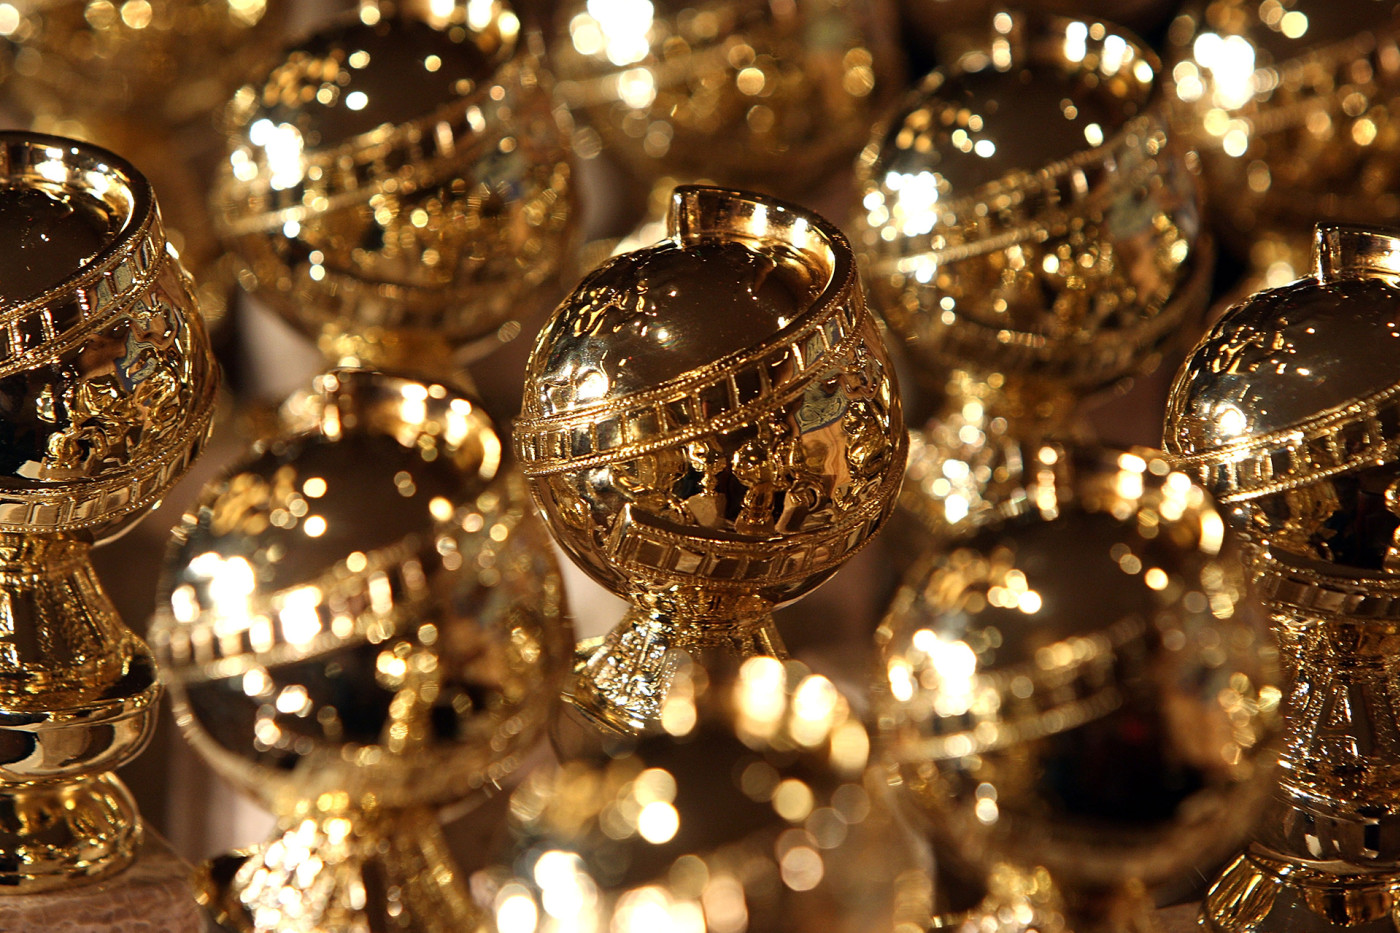 Golden Globe Awards 2021 Nominations and Snubs